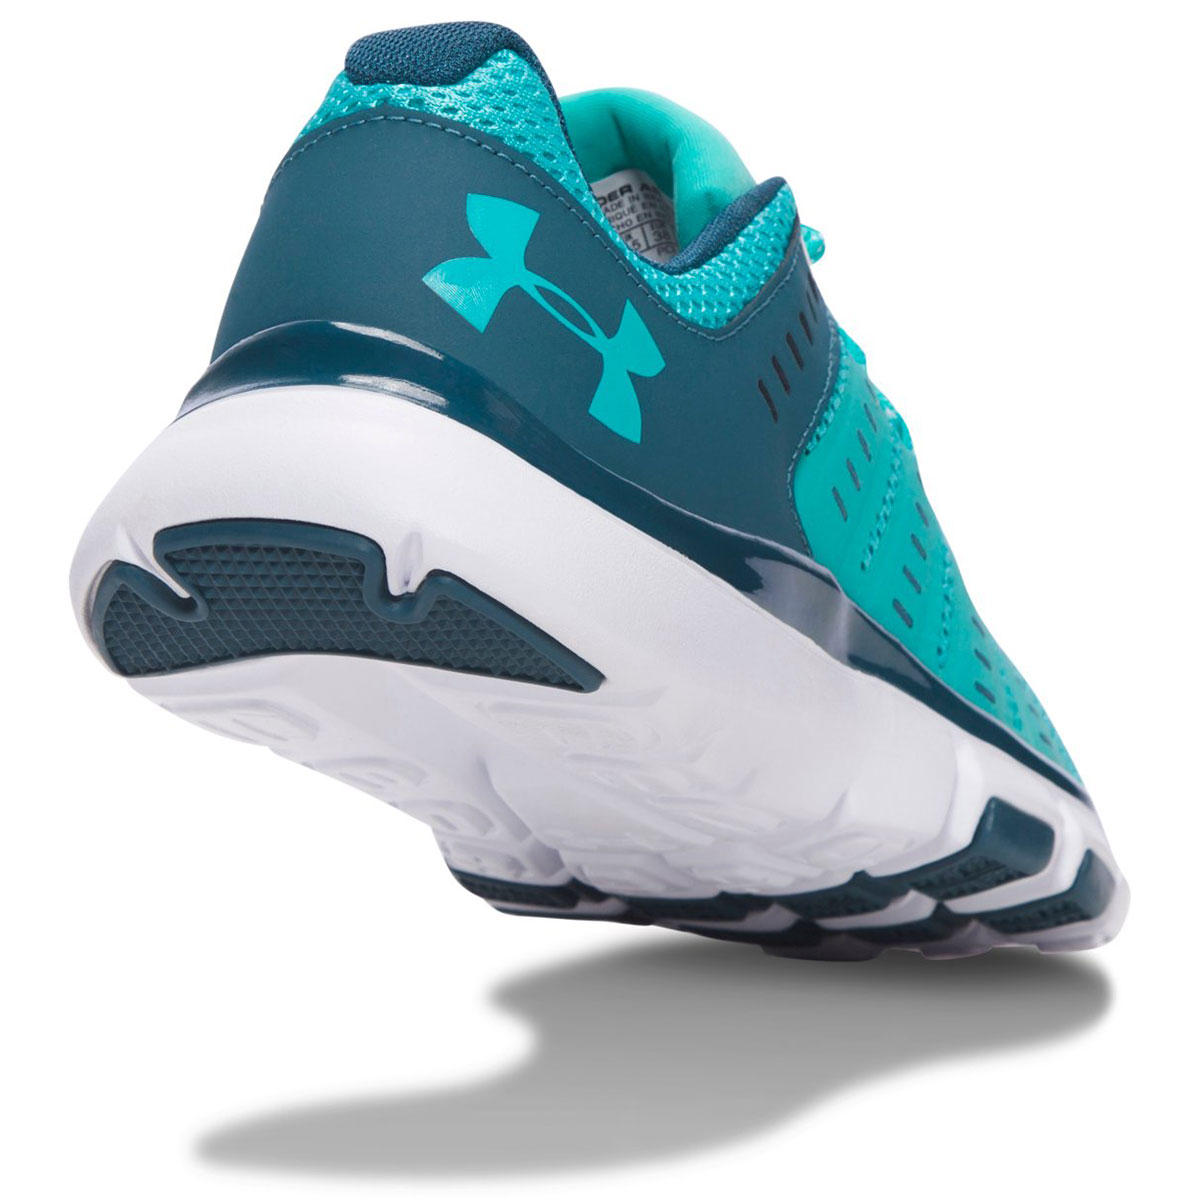 Grey 2 G Micro Tr Neptune Comfort De Stock Trainers Rupture Limitless en Armour Womens Fitness Ua Under rhino Bqwx0TIw